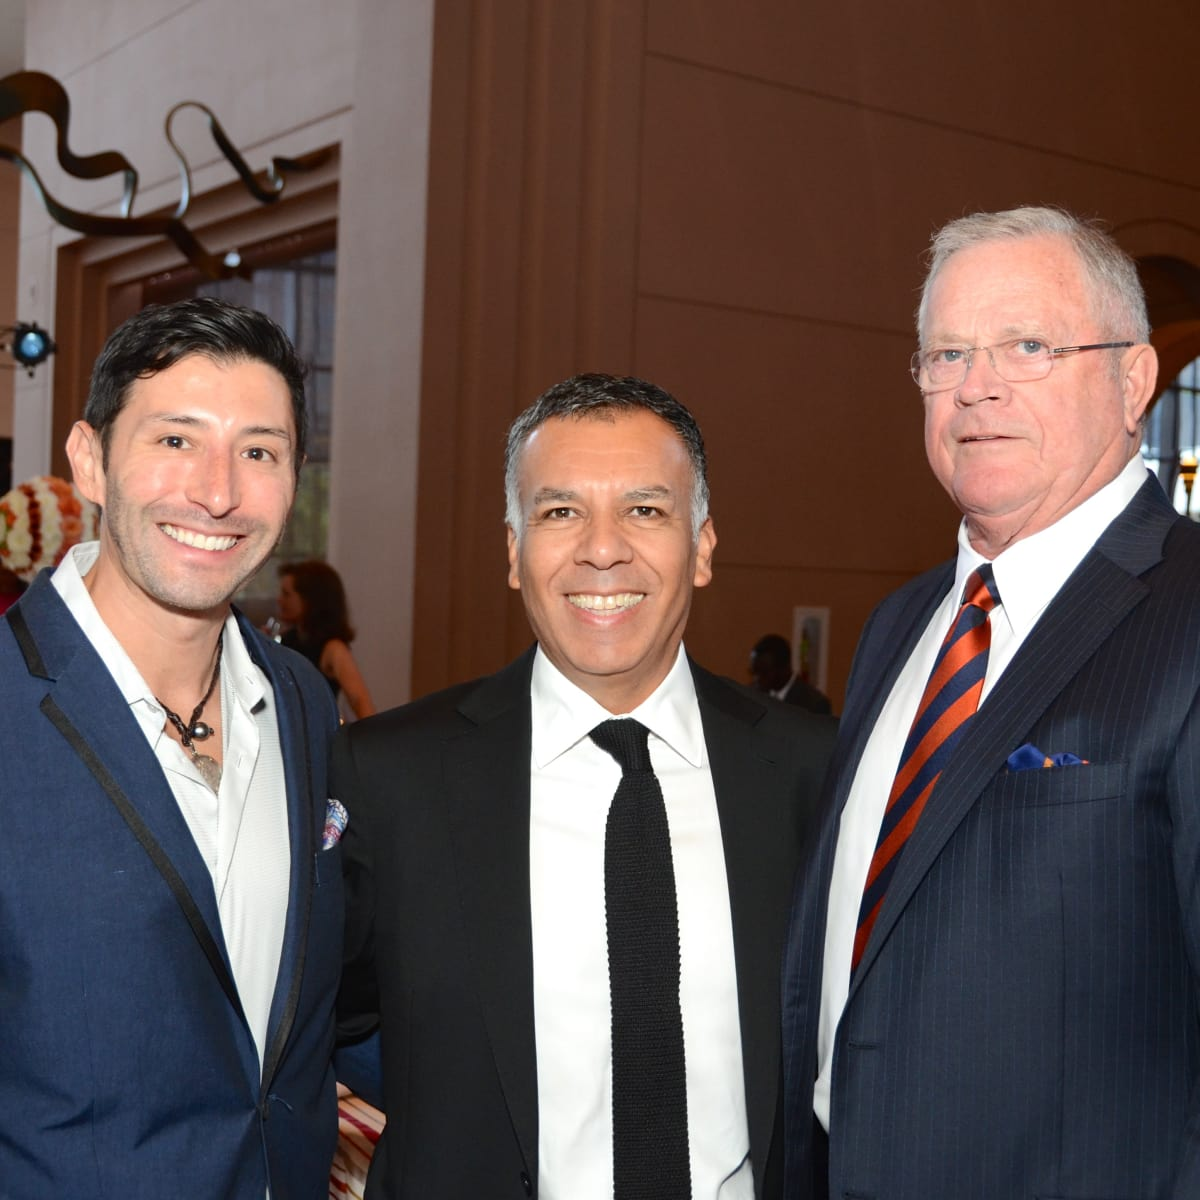 News, shelby, Legacy luncheon, Sept. 2015, Jorge Cantu, Tony Bravo, Richard Werner